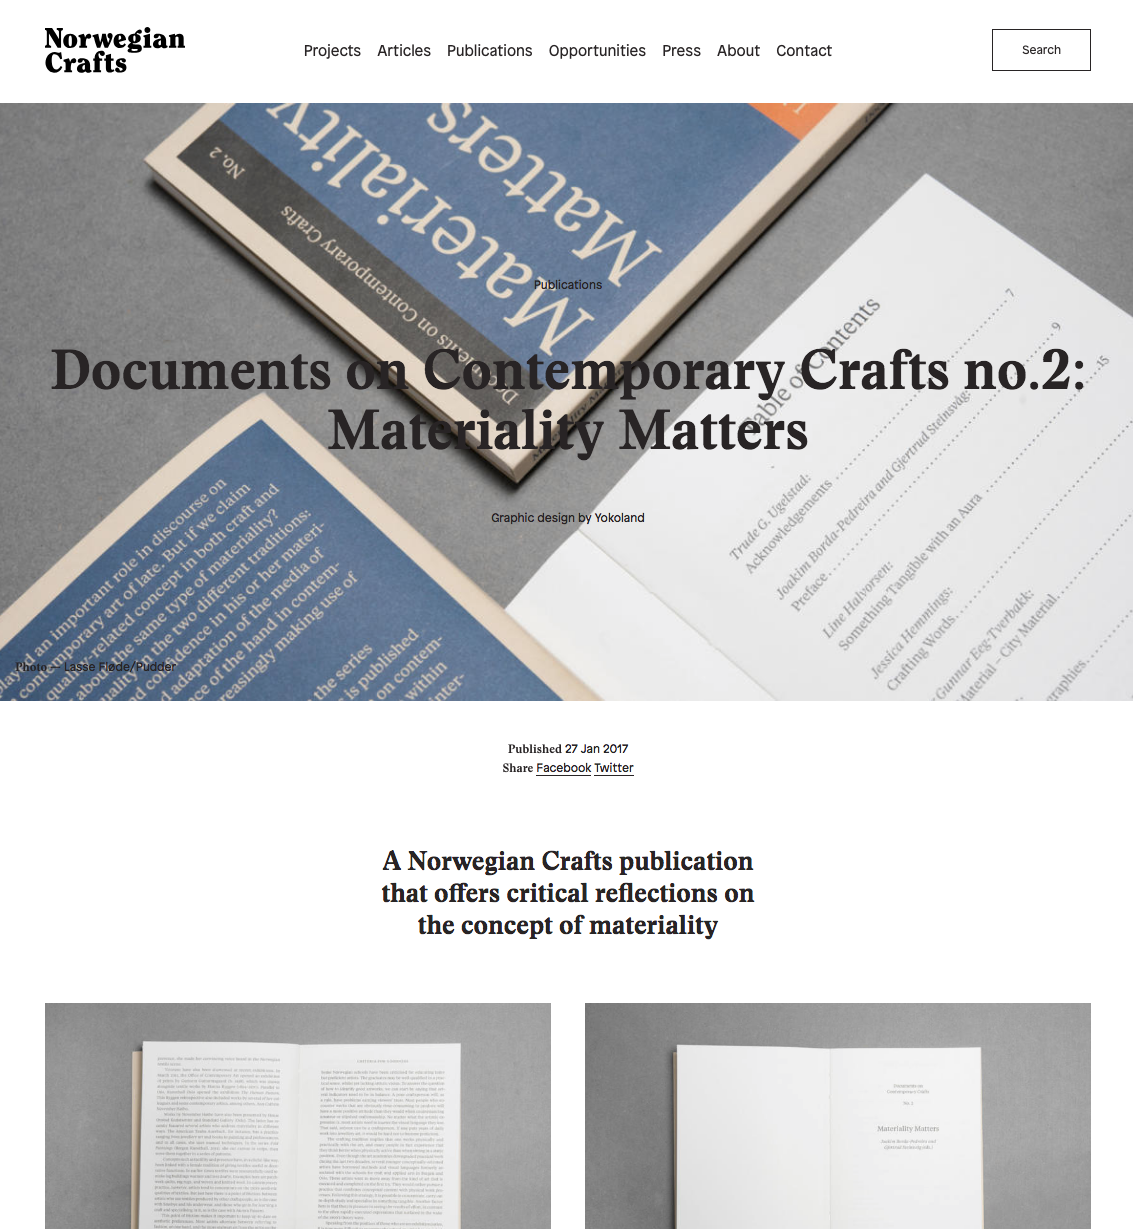 Norwegian Craft: Documents on Contemporary Crafts no.2: Materiality Matters